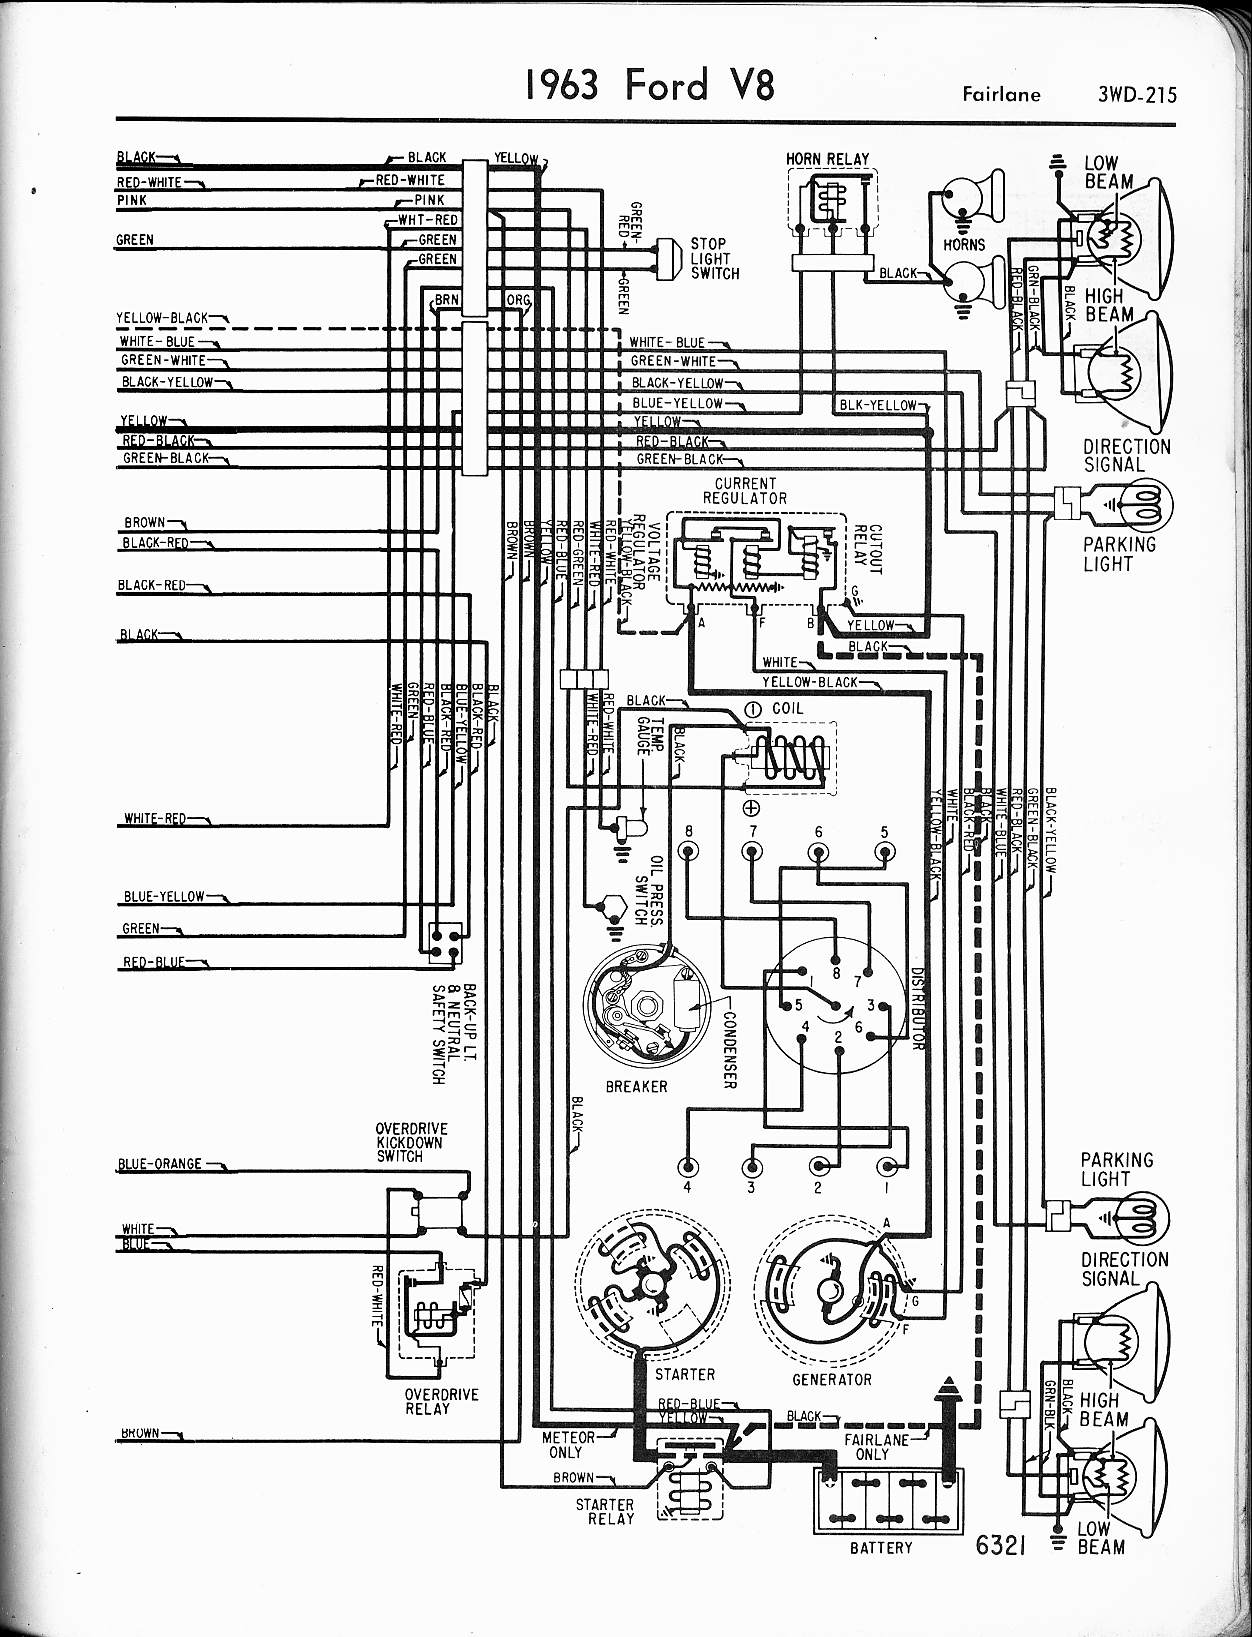 Fairlane Wiring Diagram Free Free Printable